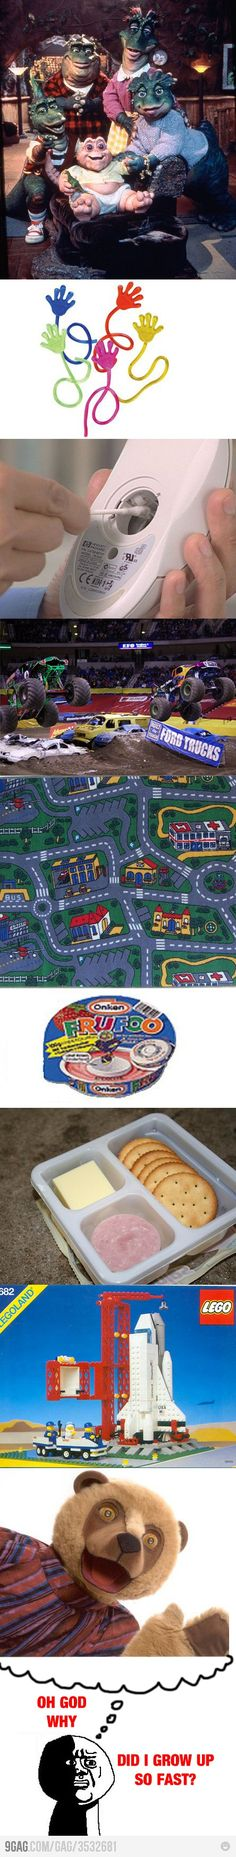 The town layout floor mat thing! Oh my god I loved that!